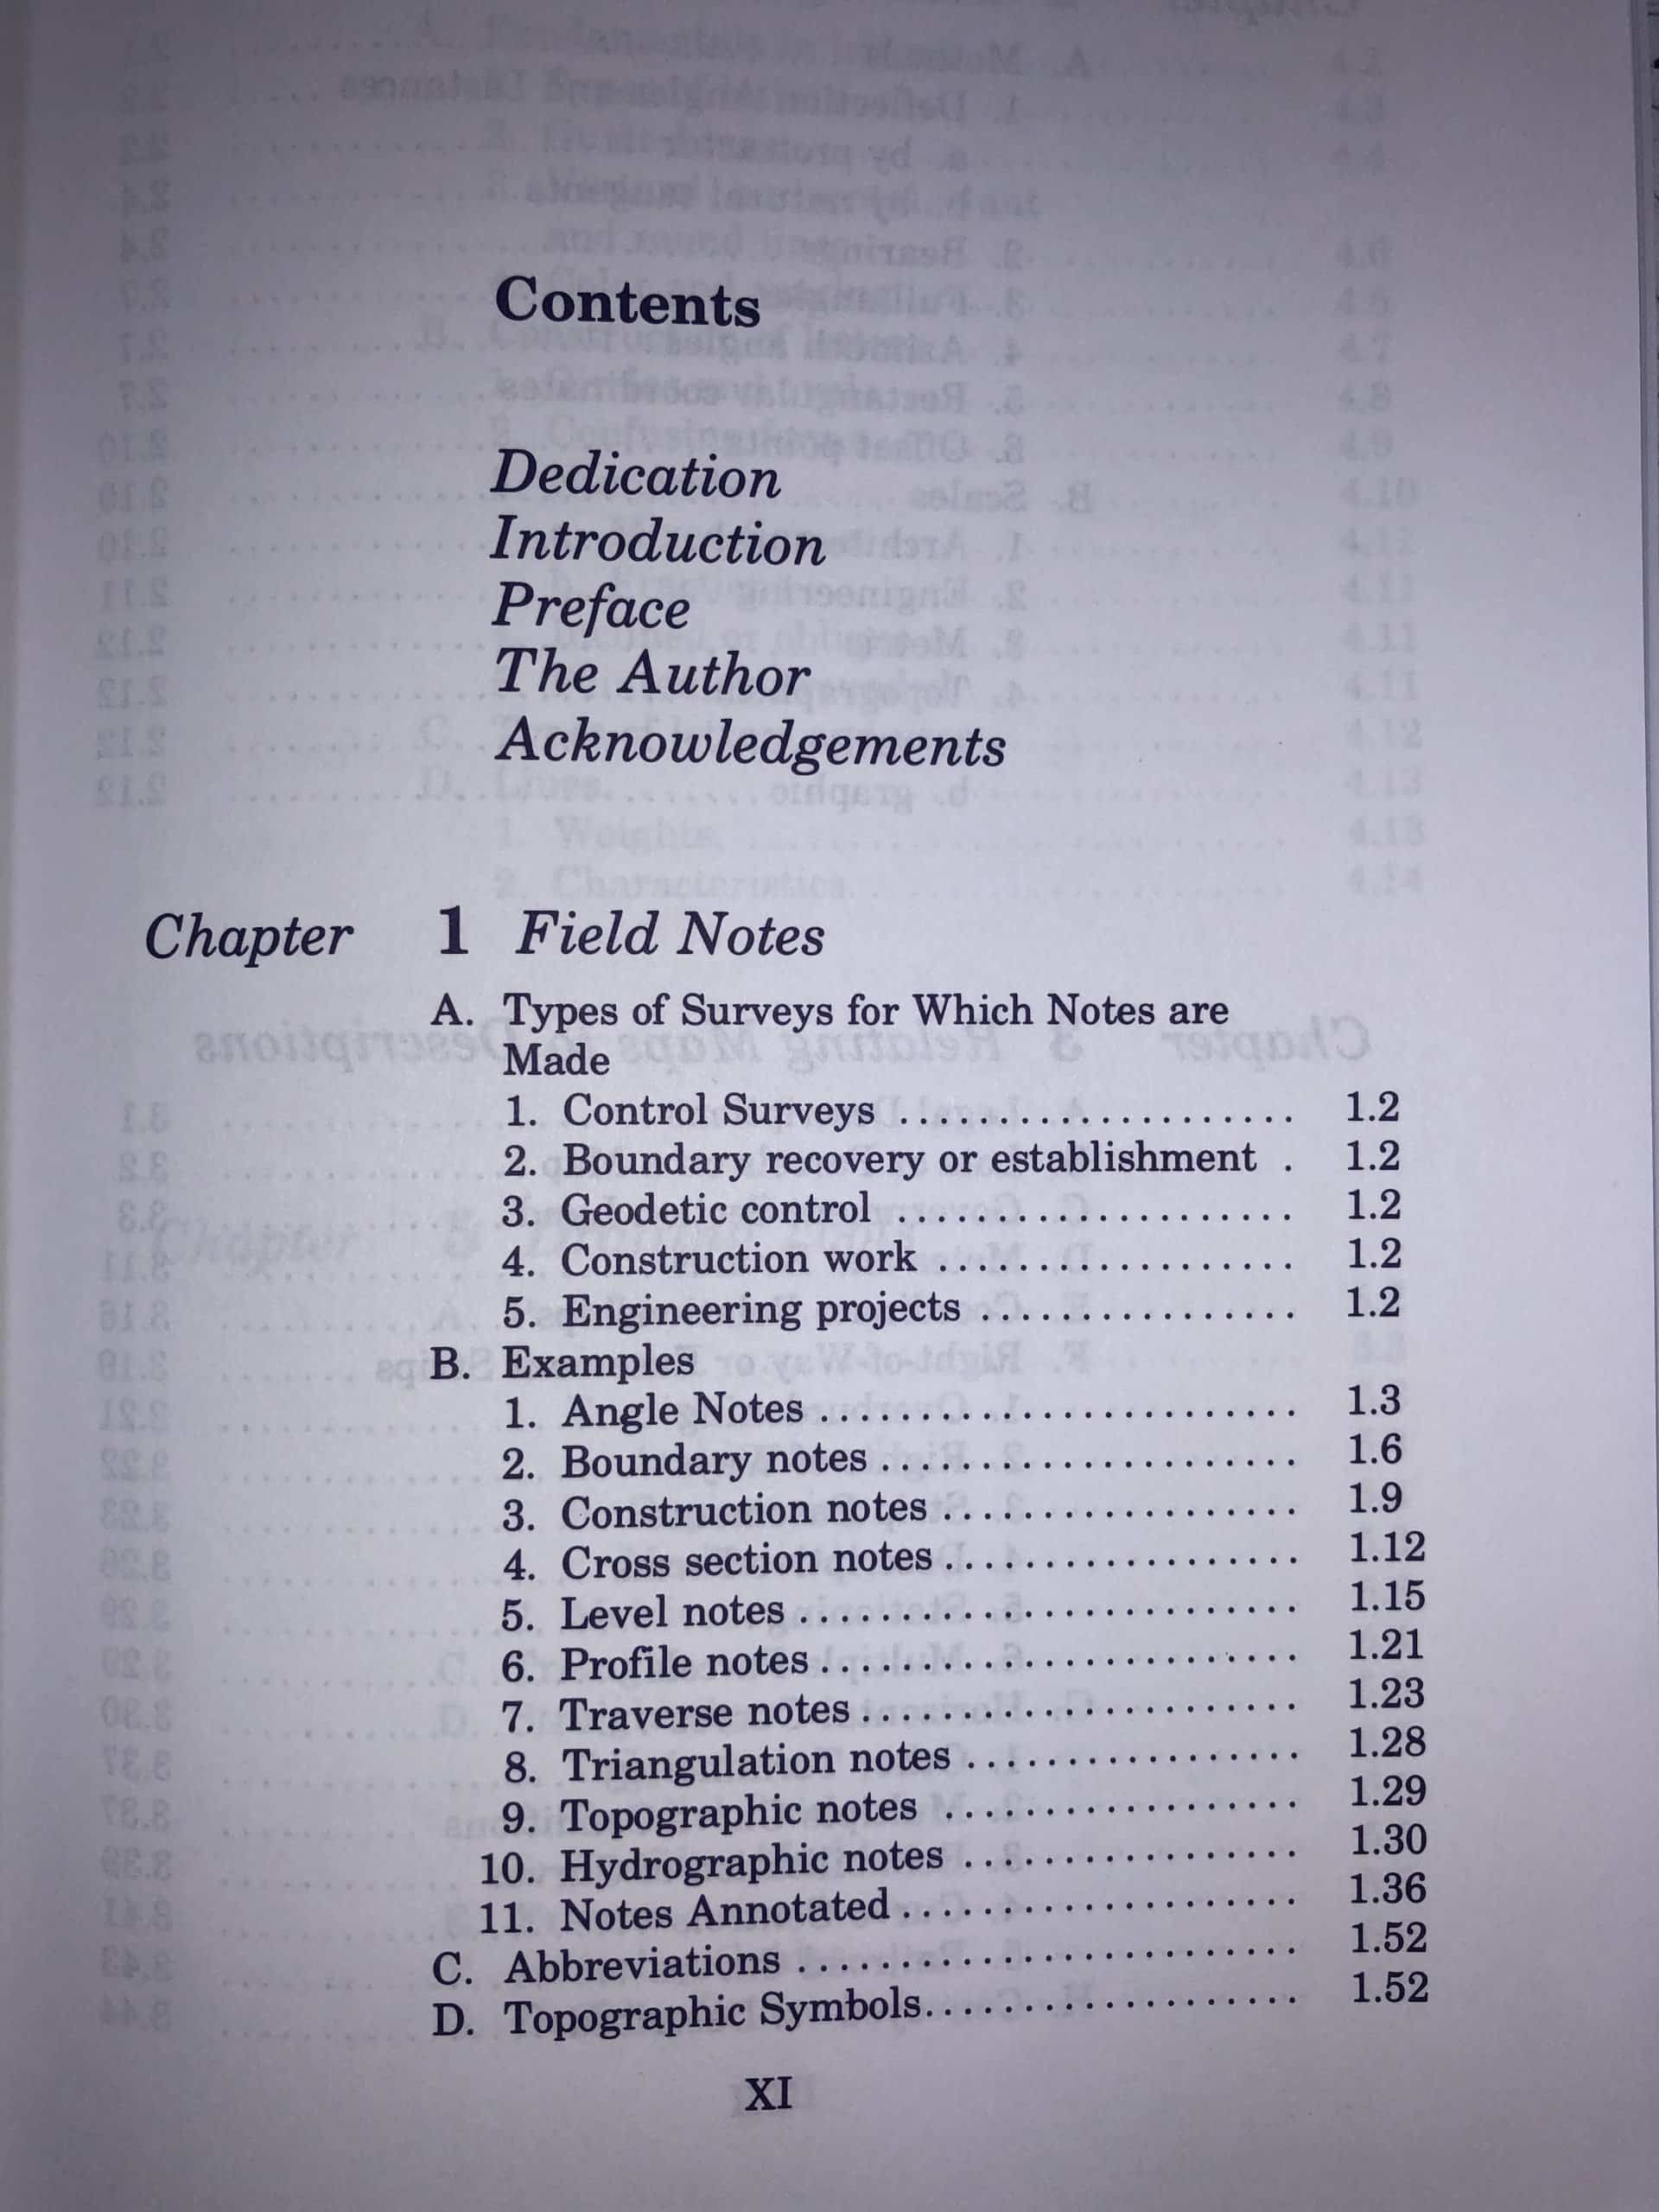 Chapter 1 Field Notes